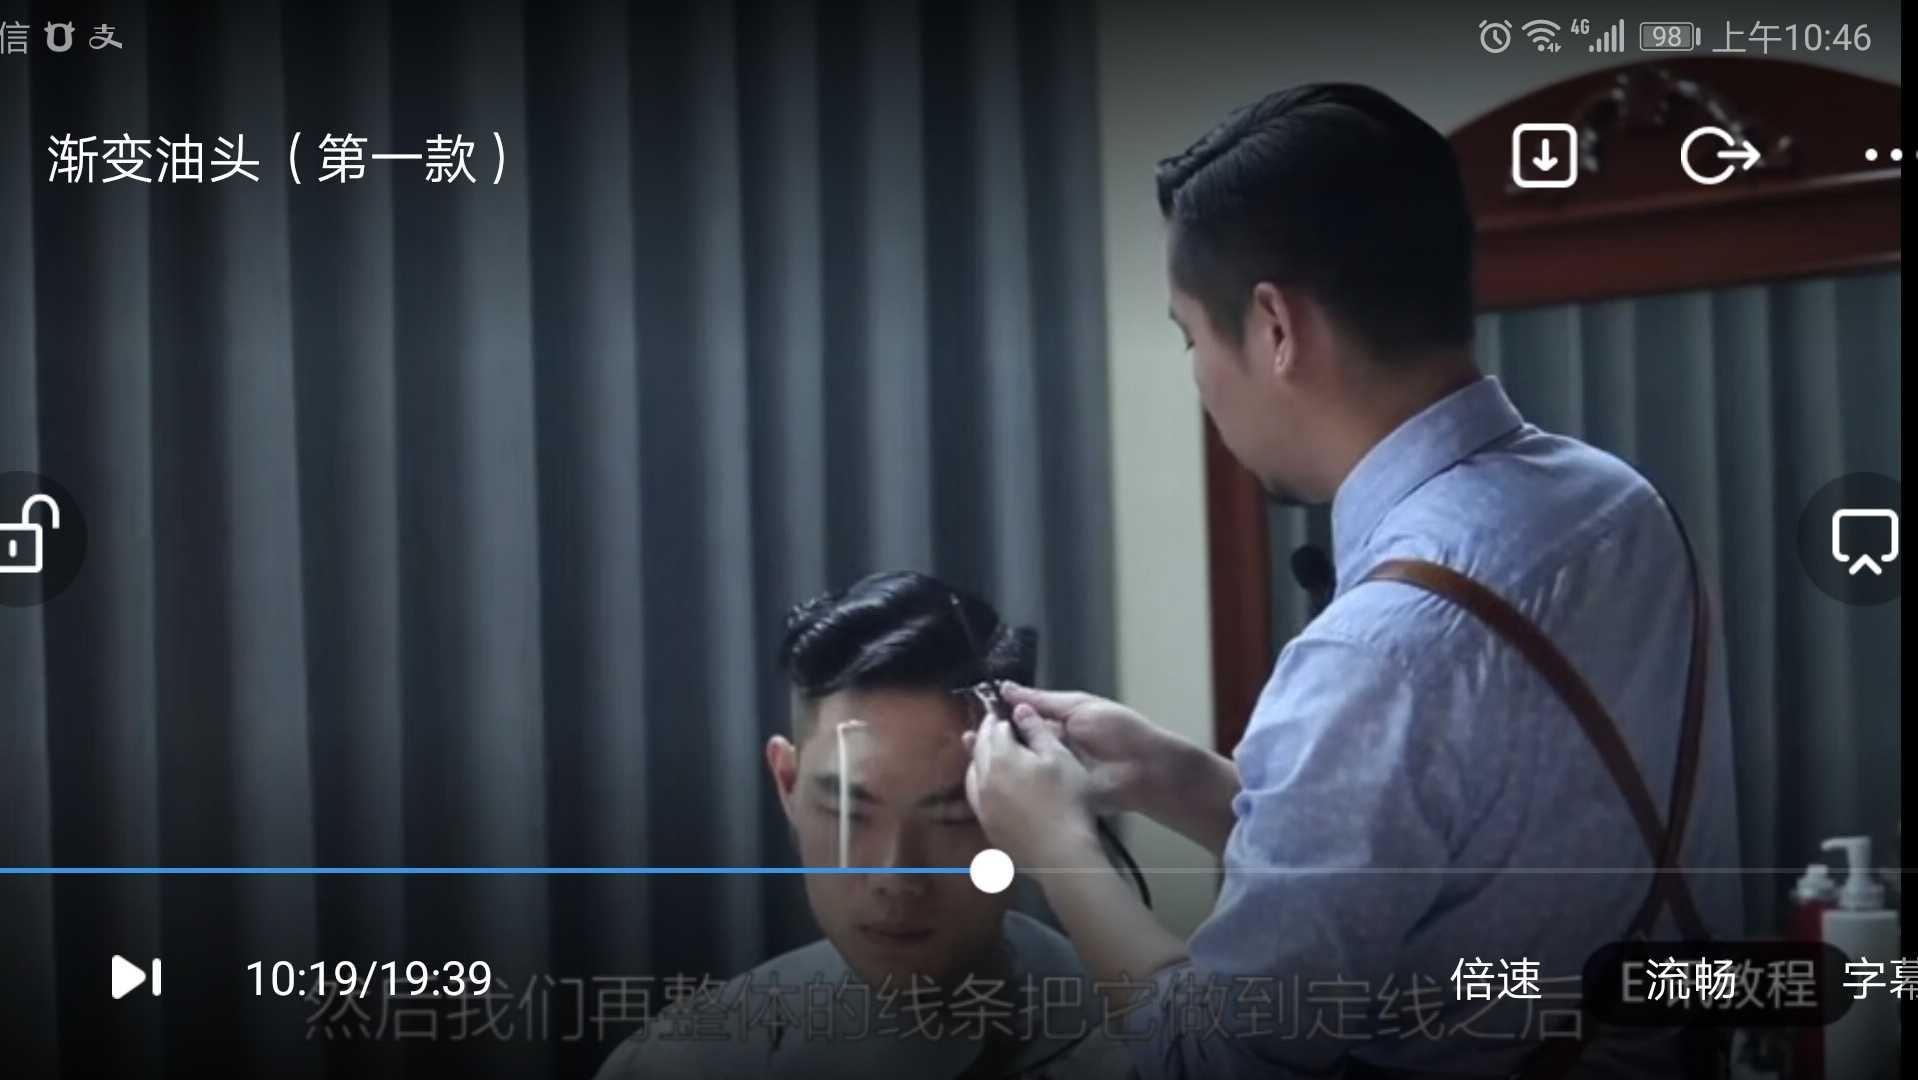 12.125] Gradual Oil Head Hair Cutting Training Video Super Practical